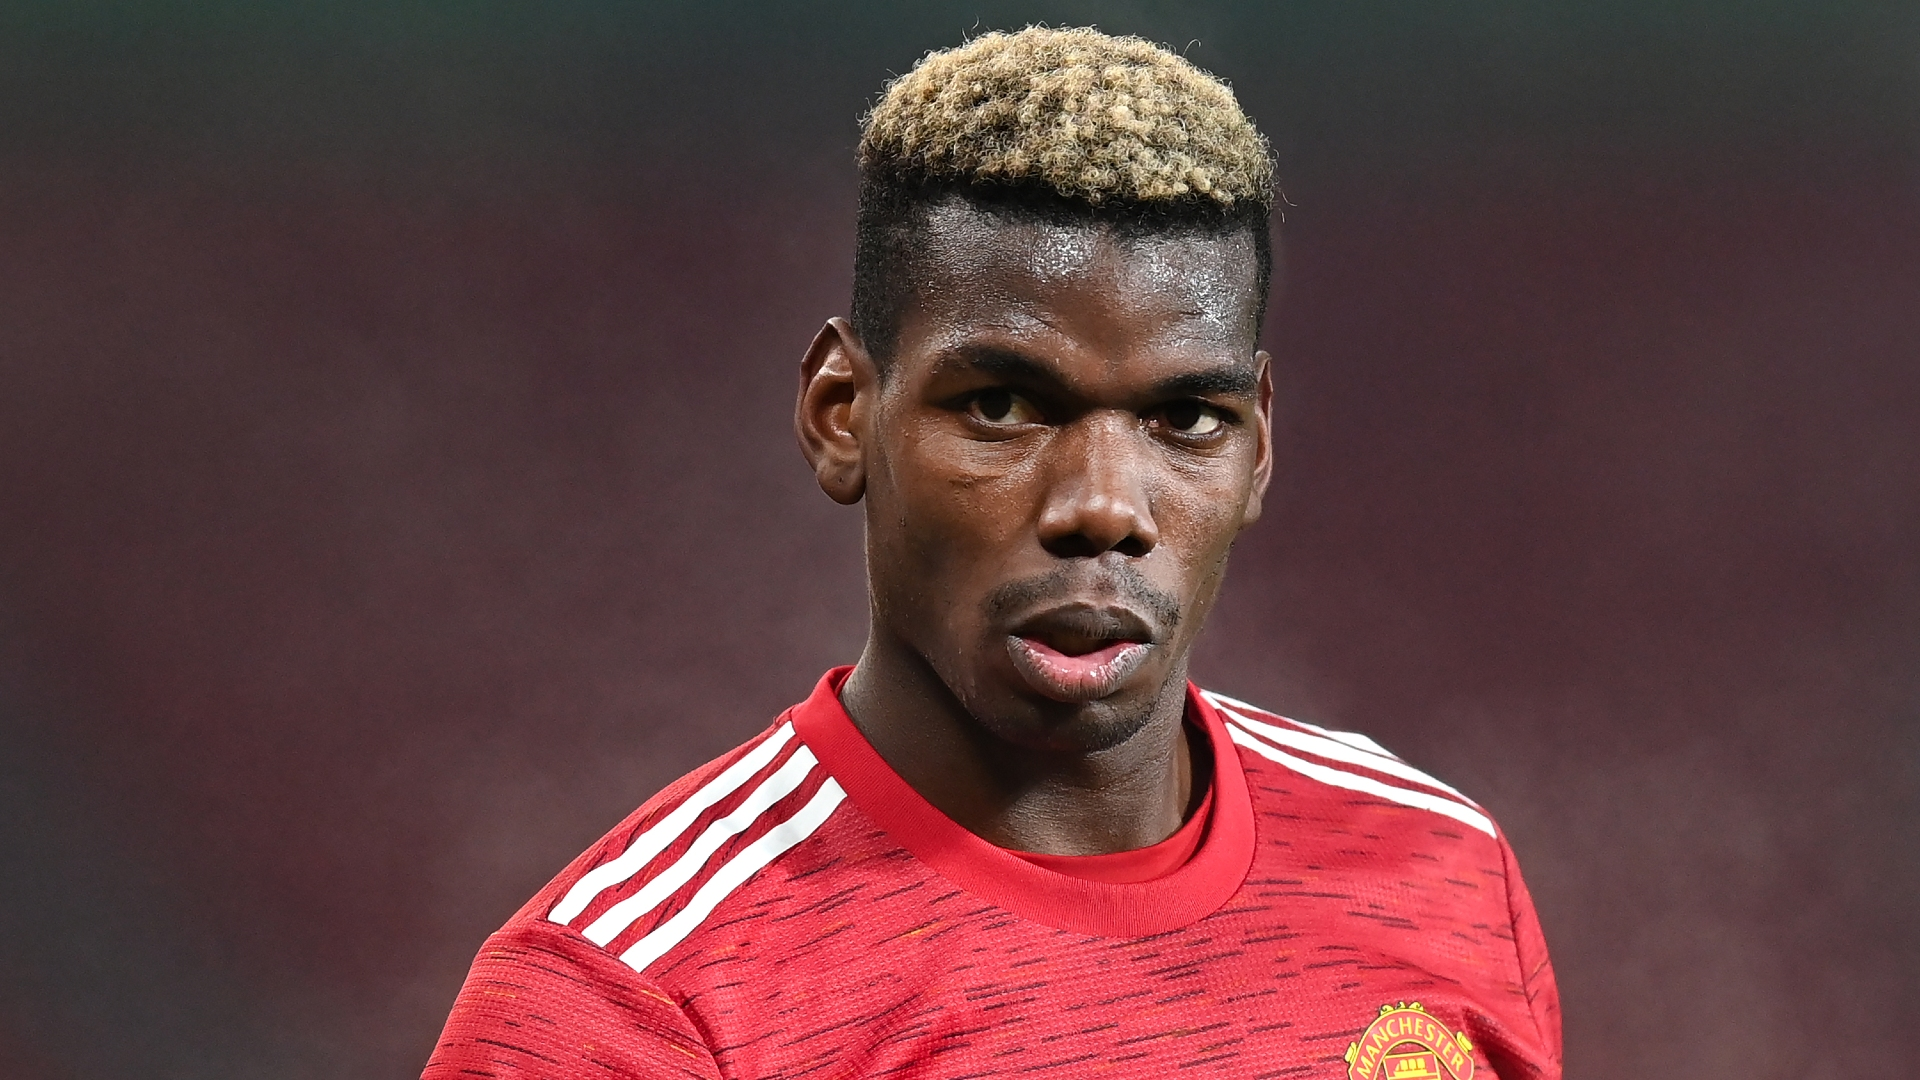 Pogba 'all about winning' at Man Utd and will be 'angry' again when Red Devils lose